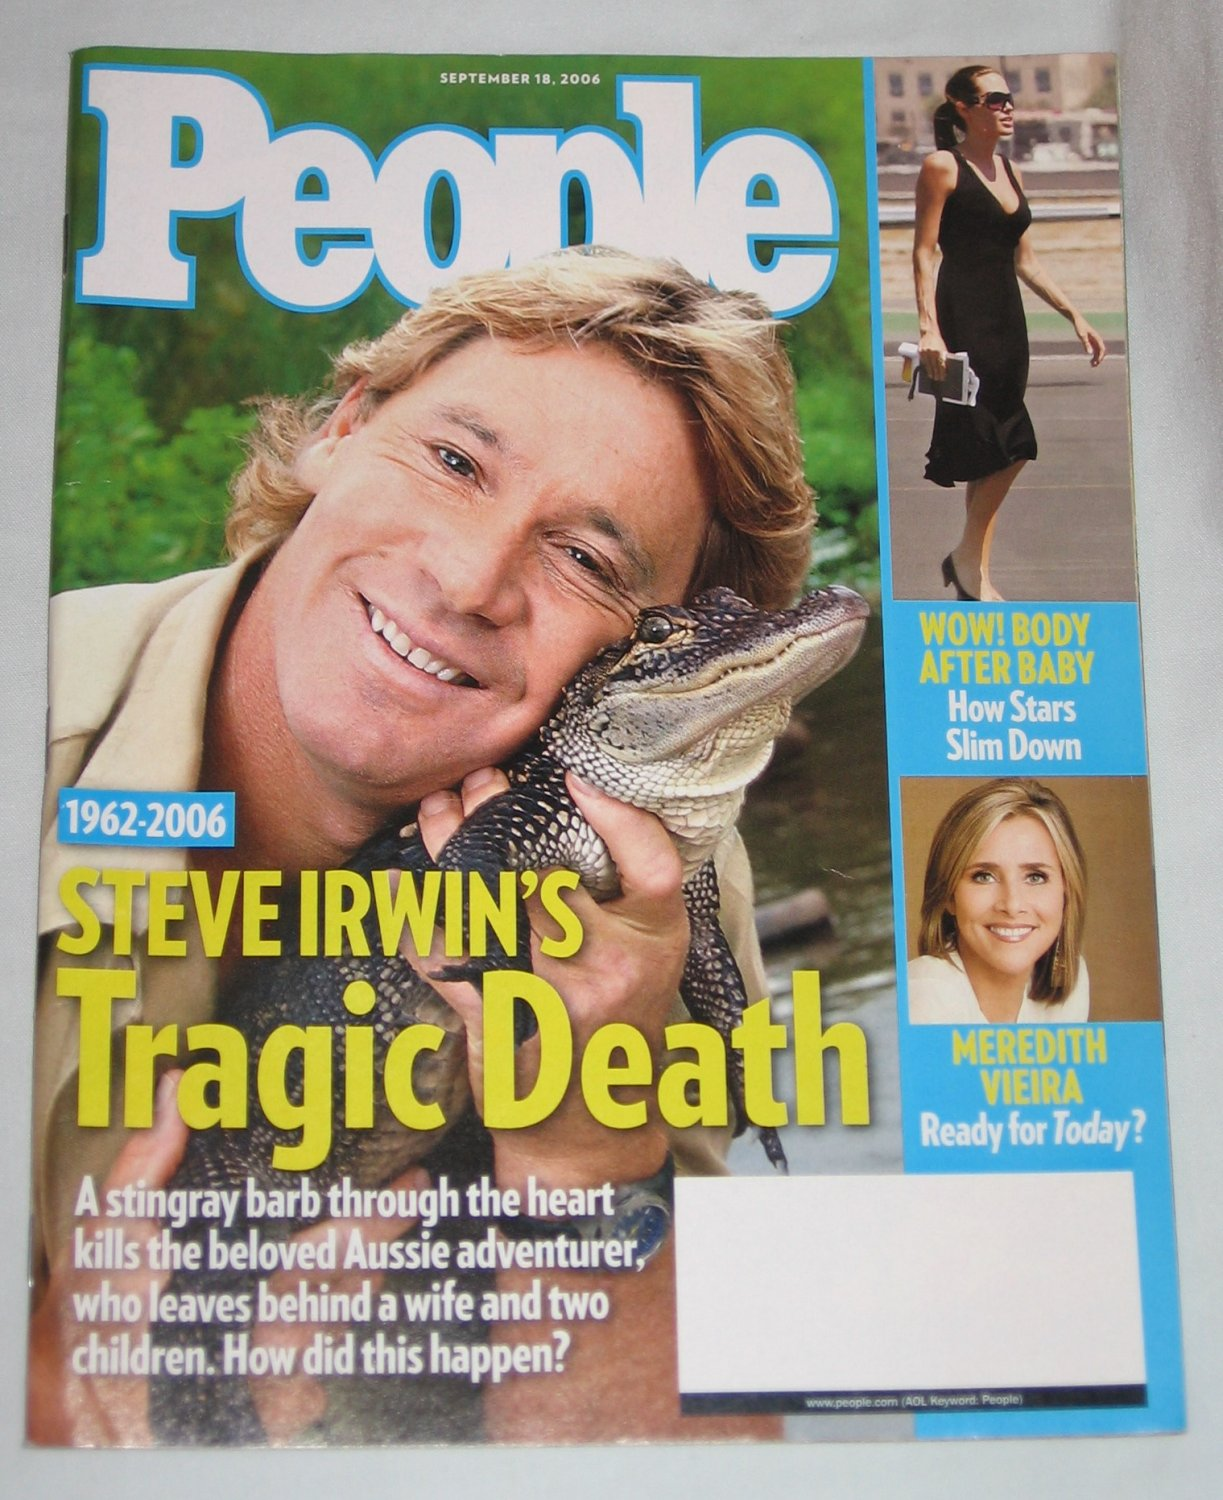 PEOPLE MAGAZINE September 2006 Steve Irwins Death Prince William Kate Middleton Meredith Vieira